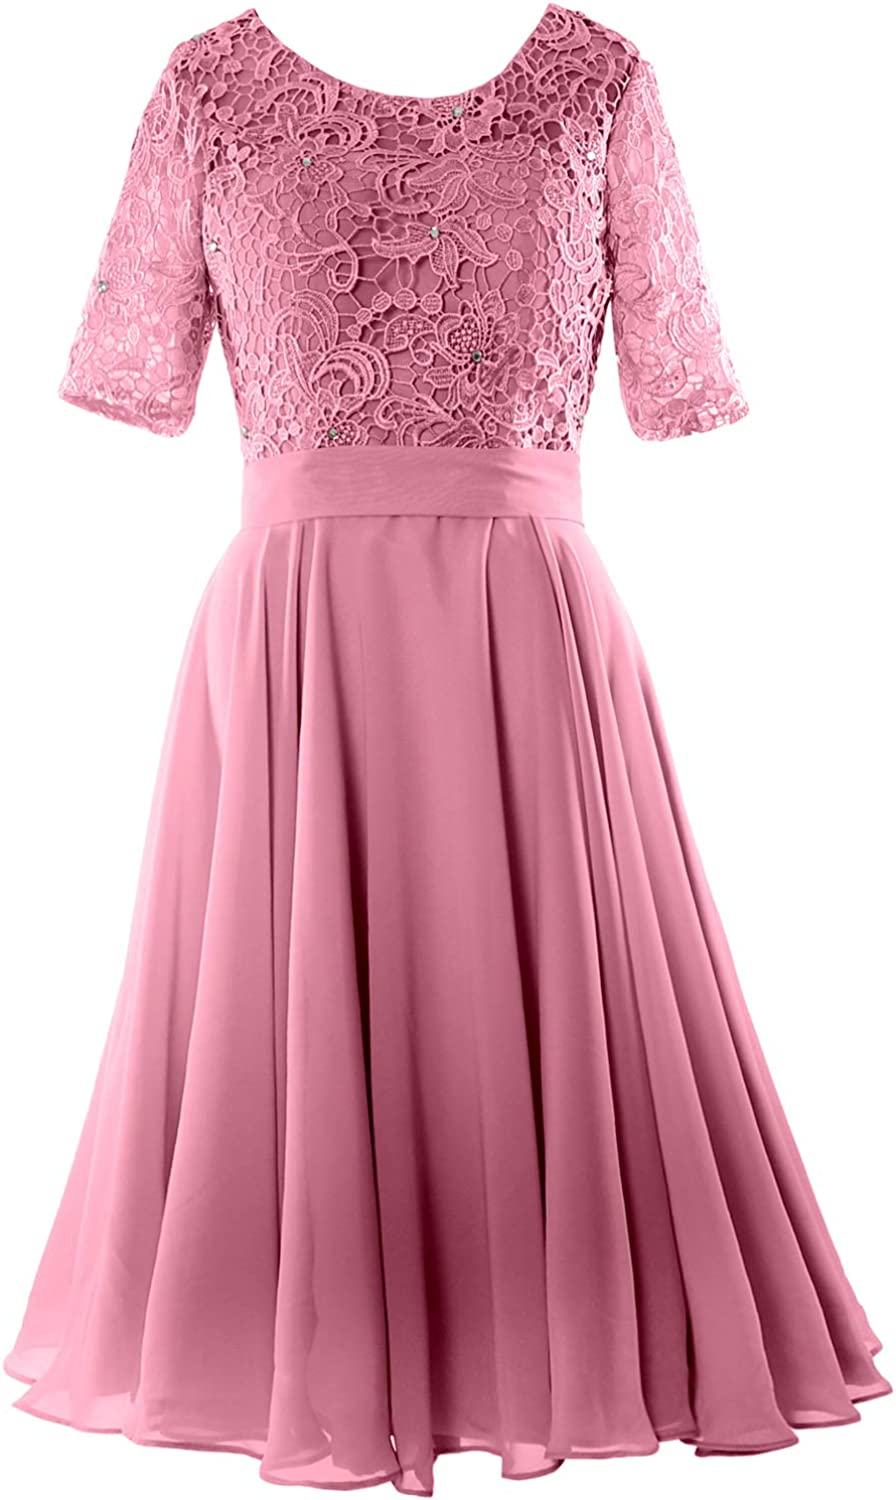 44d17dab3ff6 MACloth Women Lace Wedding Formal Gown Half Sleeve Short Mother of Bride  Dress